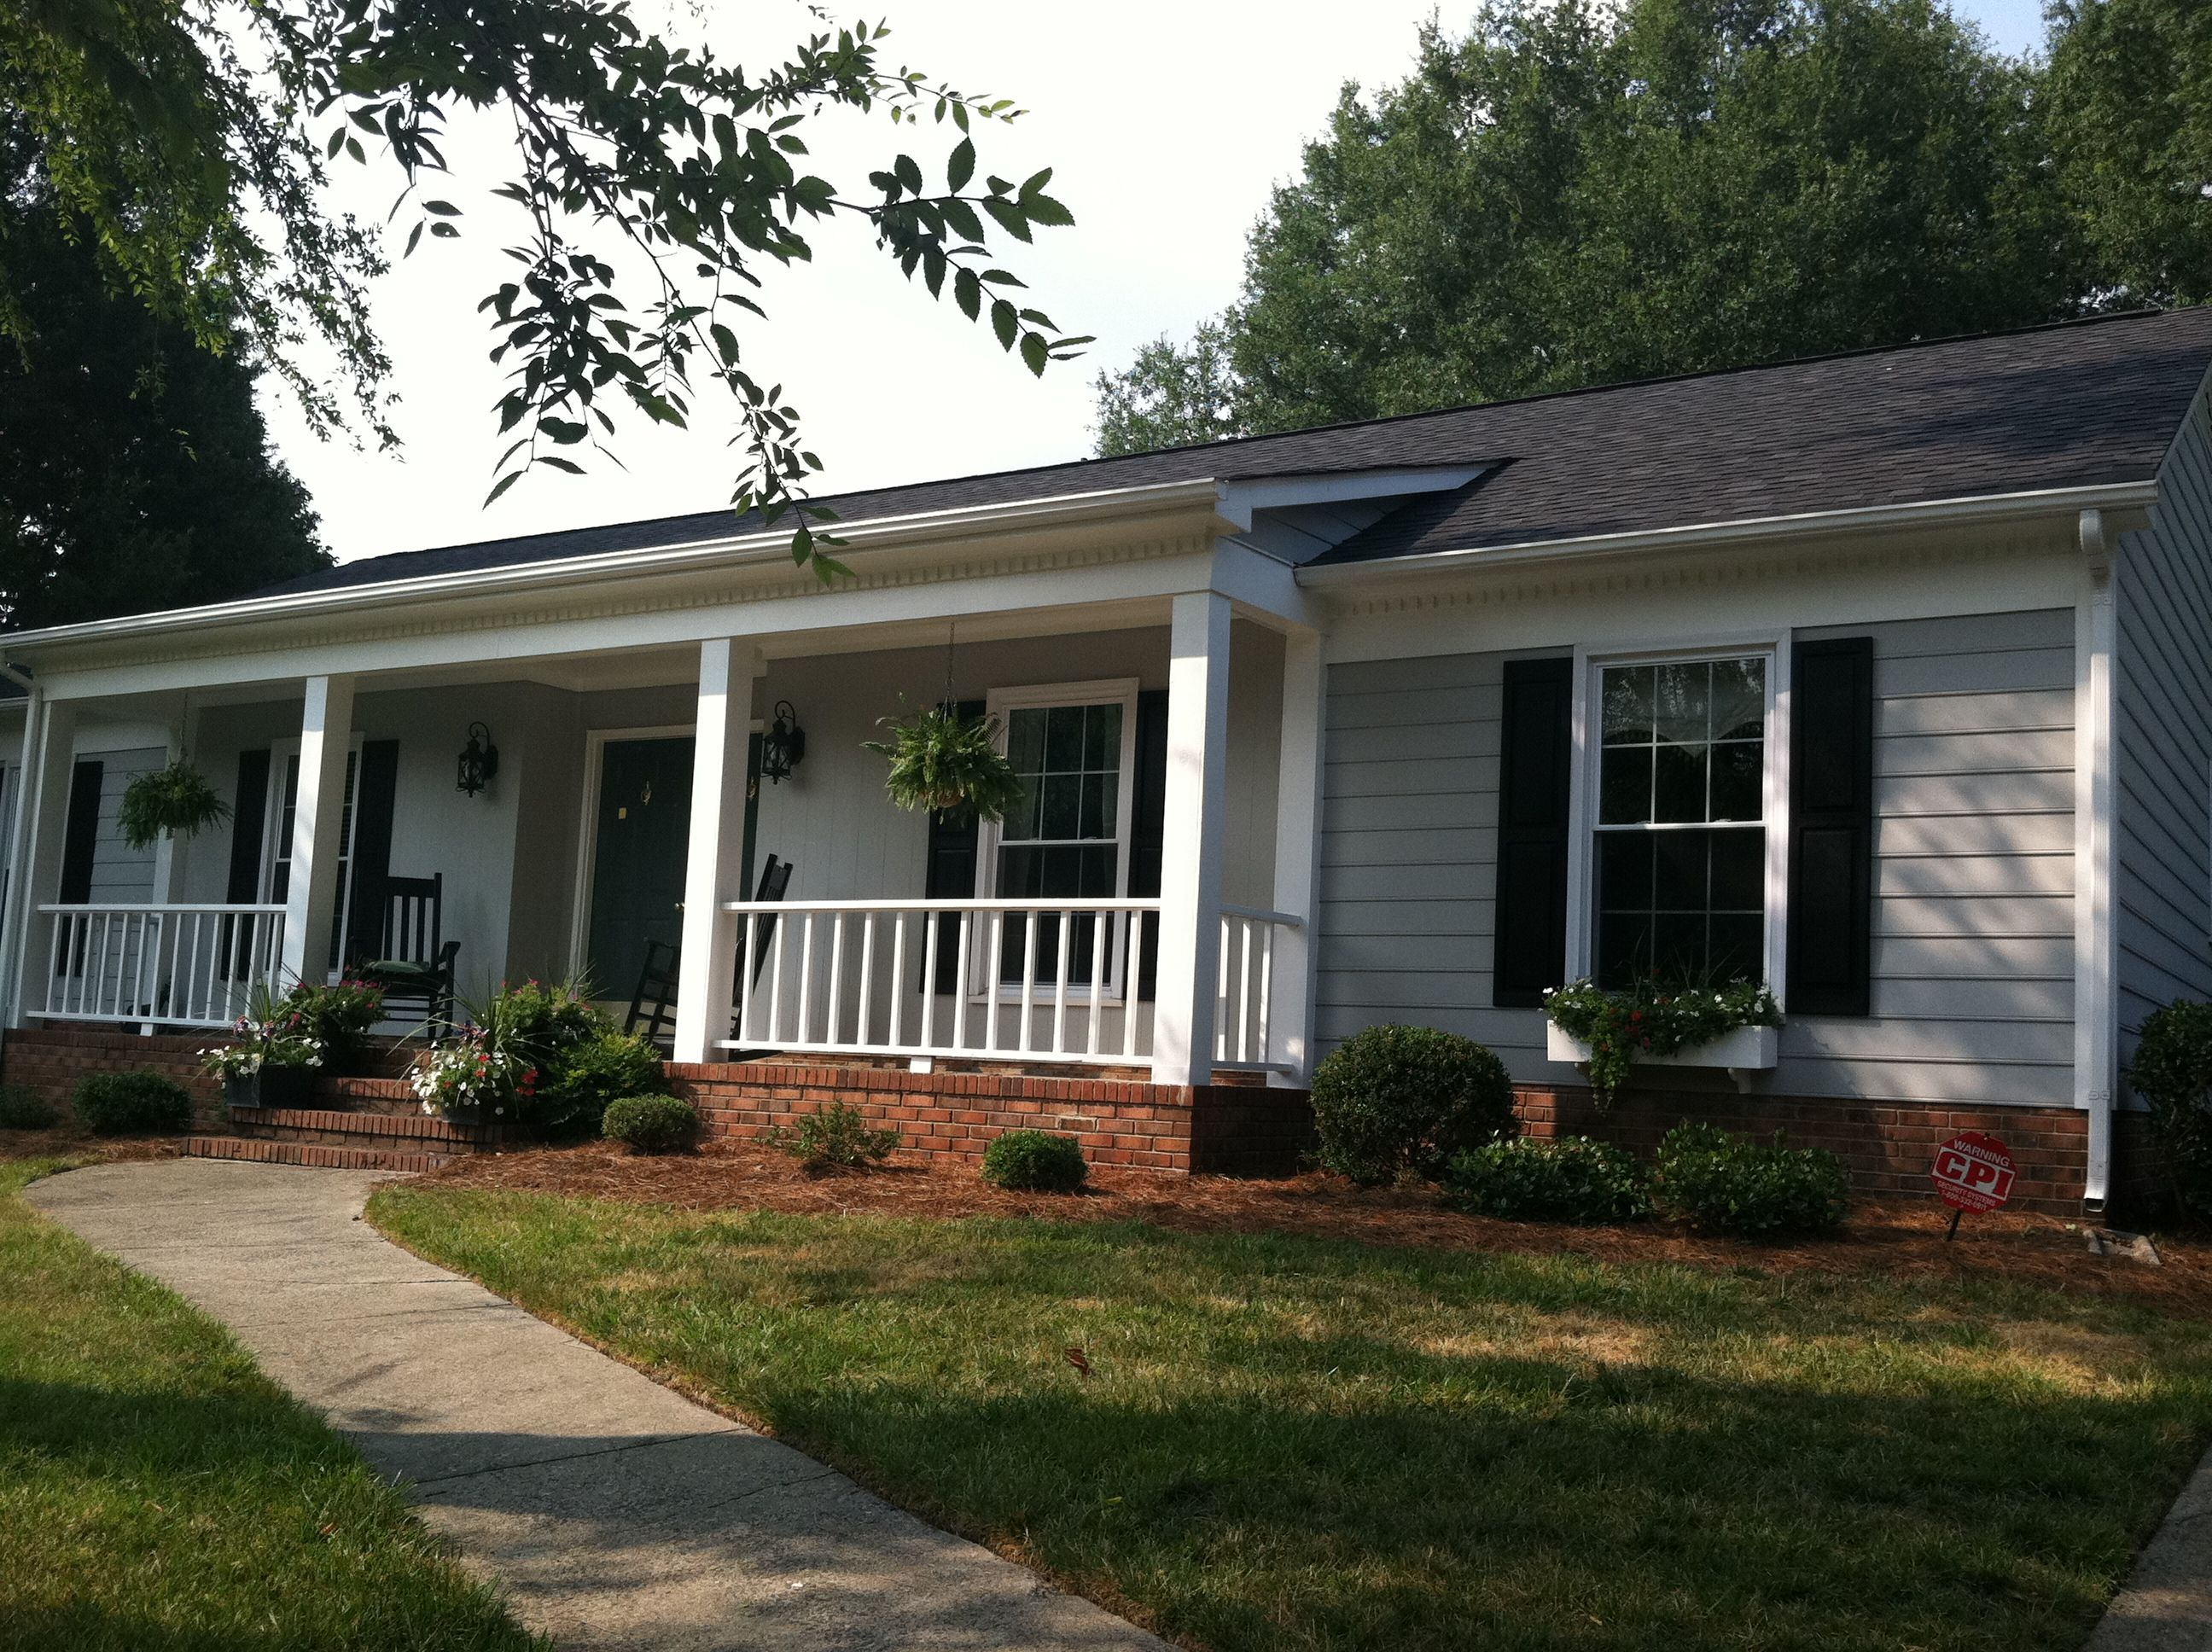 Pin By Amber Schmitt On For Bunsie Exterior Paint Colors For House Gray House Exterior Grey Exterior House Colors